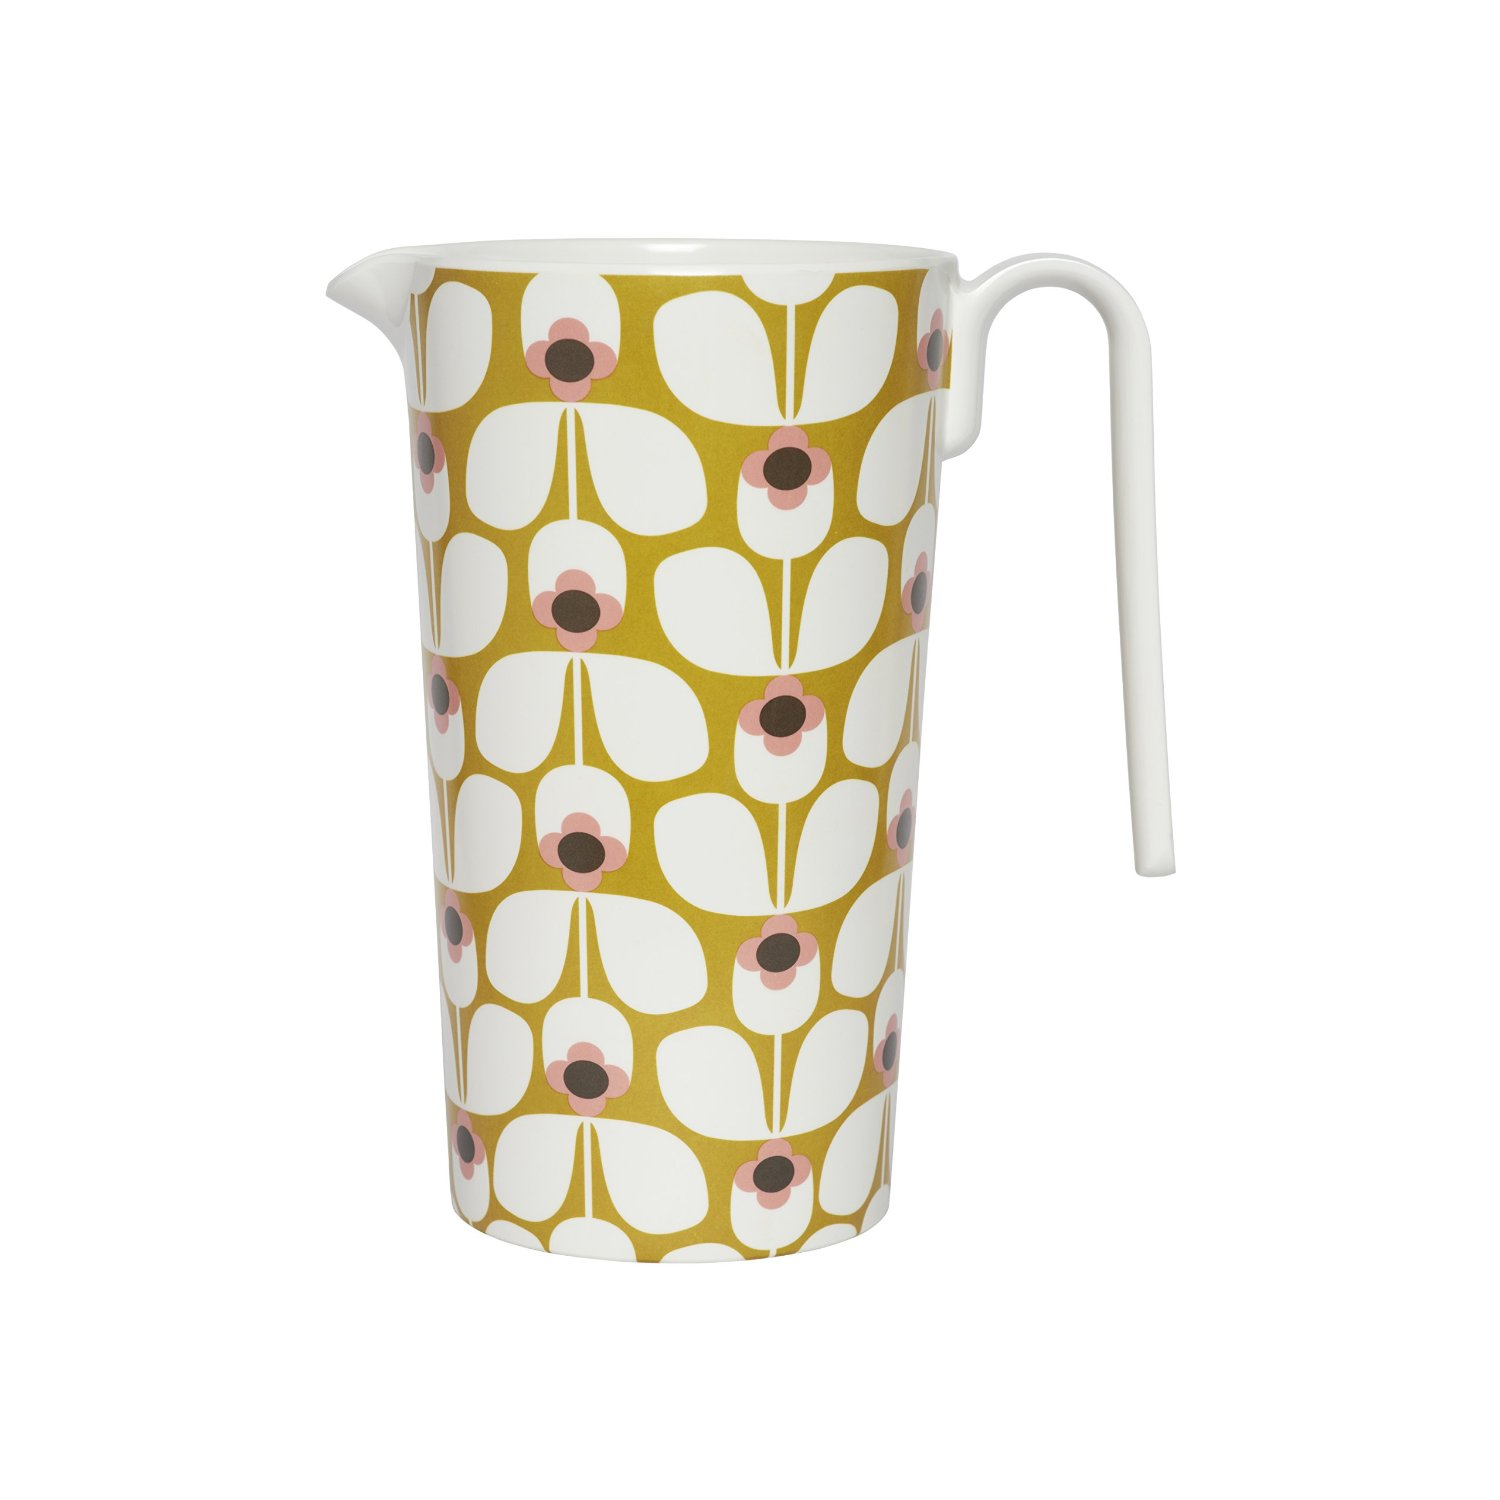 Orla Kiely Melamine Jug Pitcher Wallflower Candy Floss